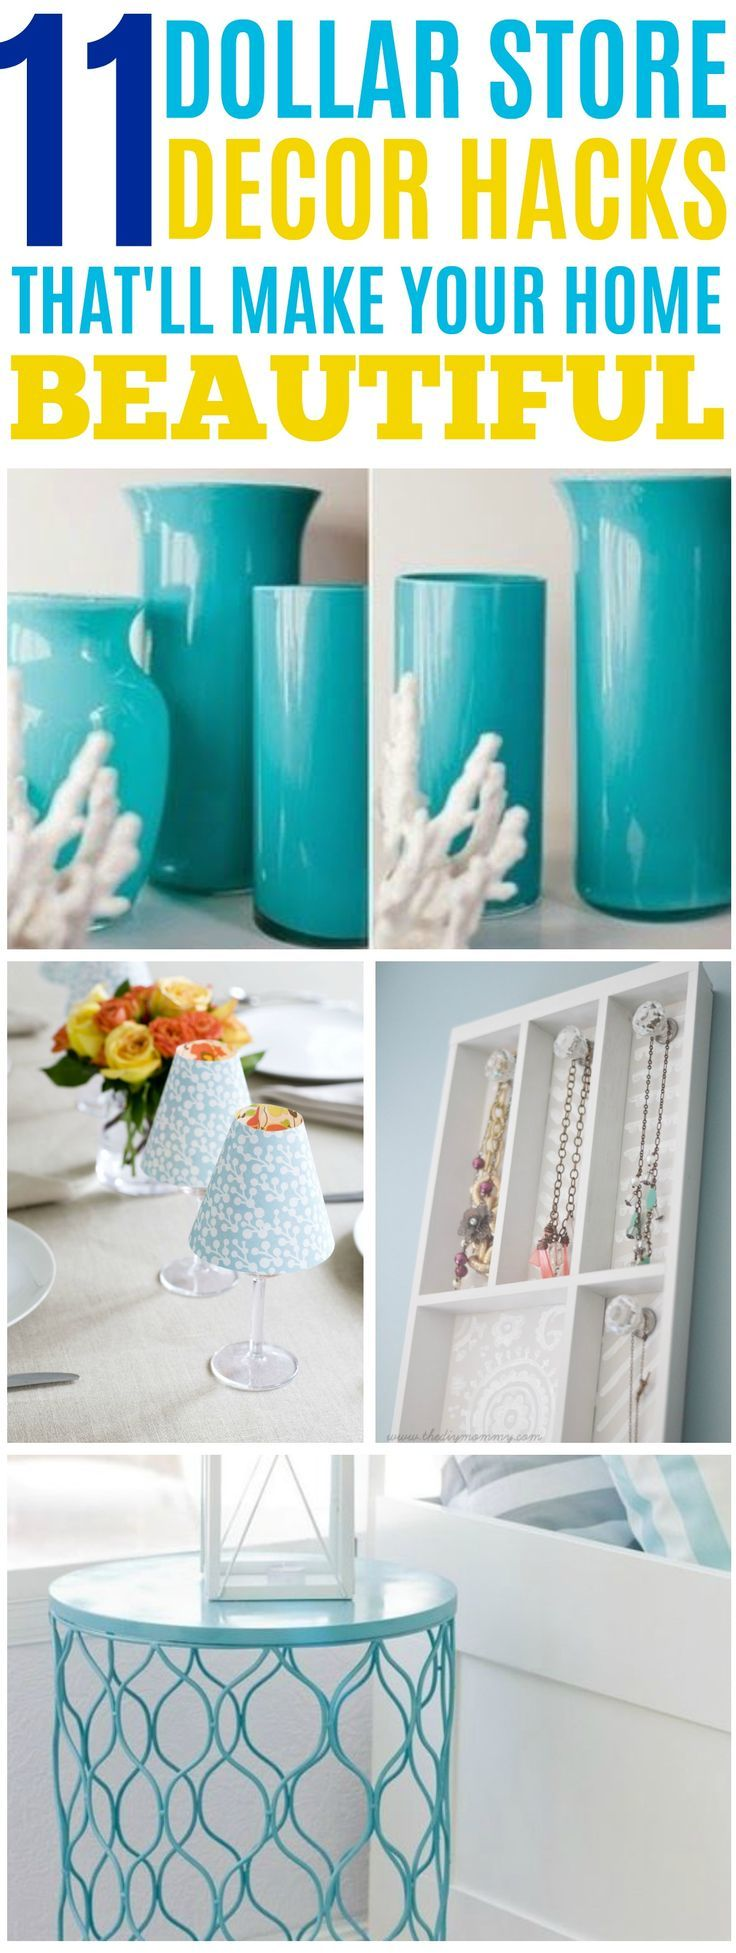 dollar store decorating hacks 11 dollar decor hacks to spruce up your home hacks 10802